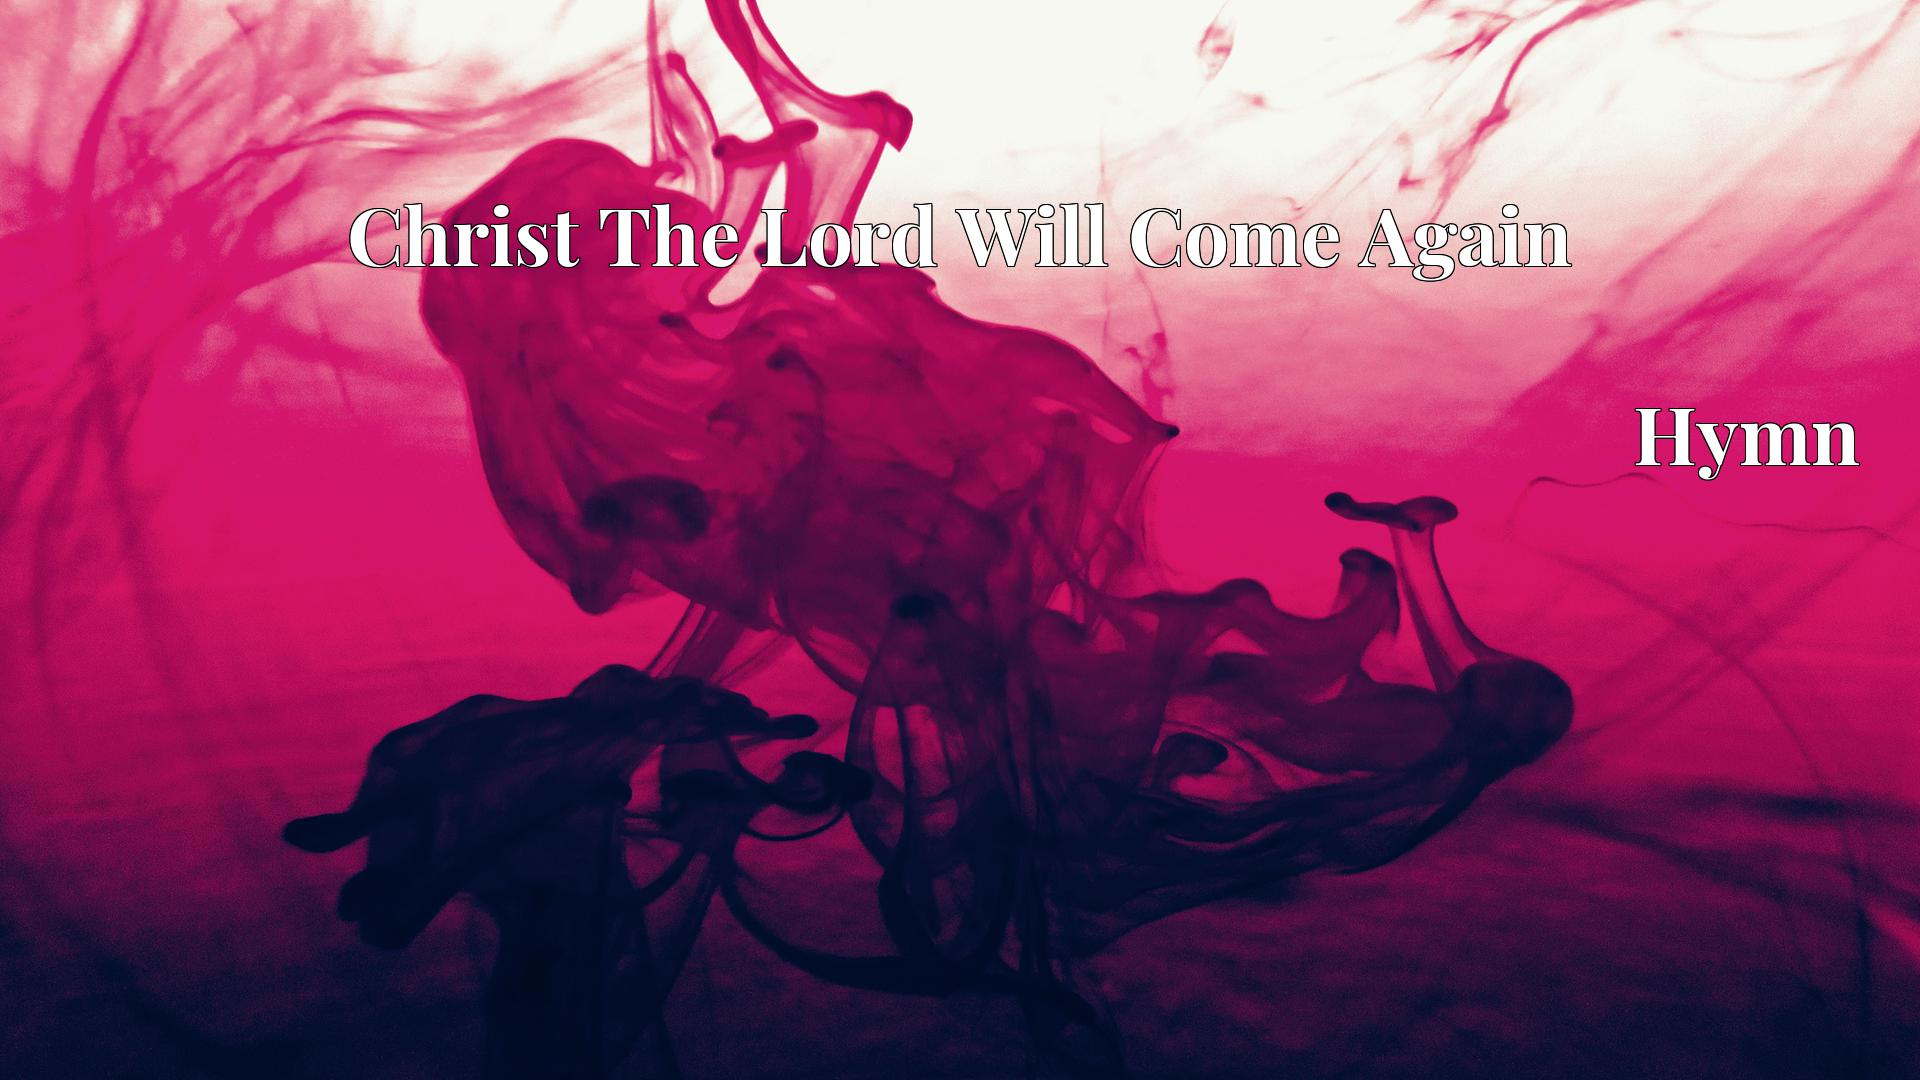 Christ The Lord Will Come Again - Hymn